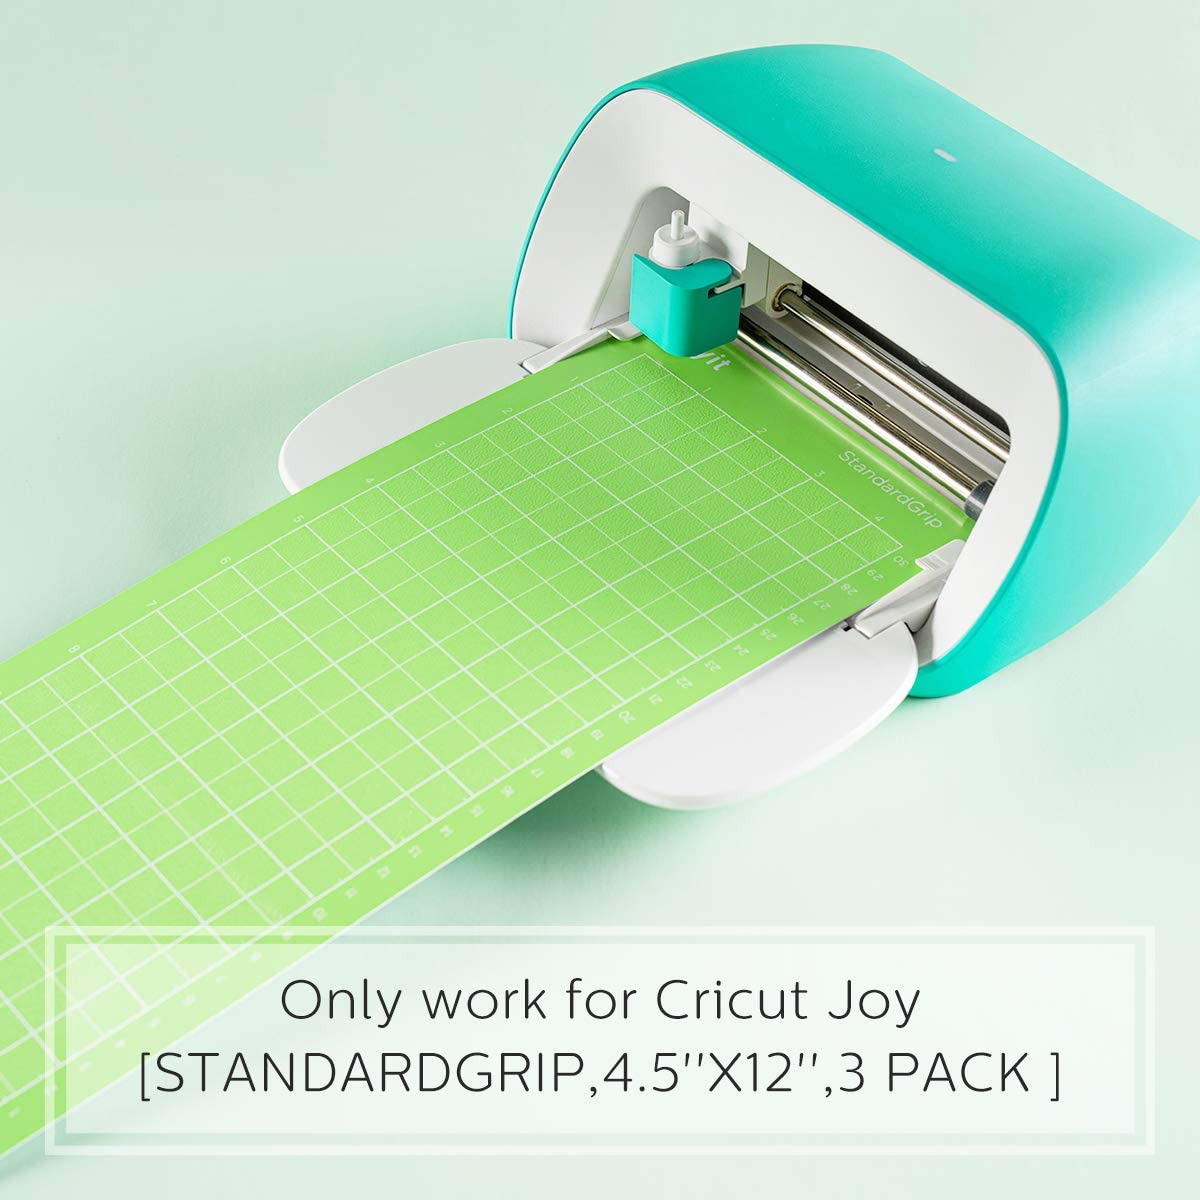 4.5x12 Inch, 3 Pack Joy Mat Adhesive Cutting Mats for Cricut Joy Accessories for Creative DIY Works Diyit Lightgrip Cutting Mat for Cricut Joy